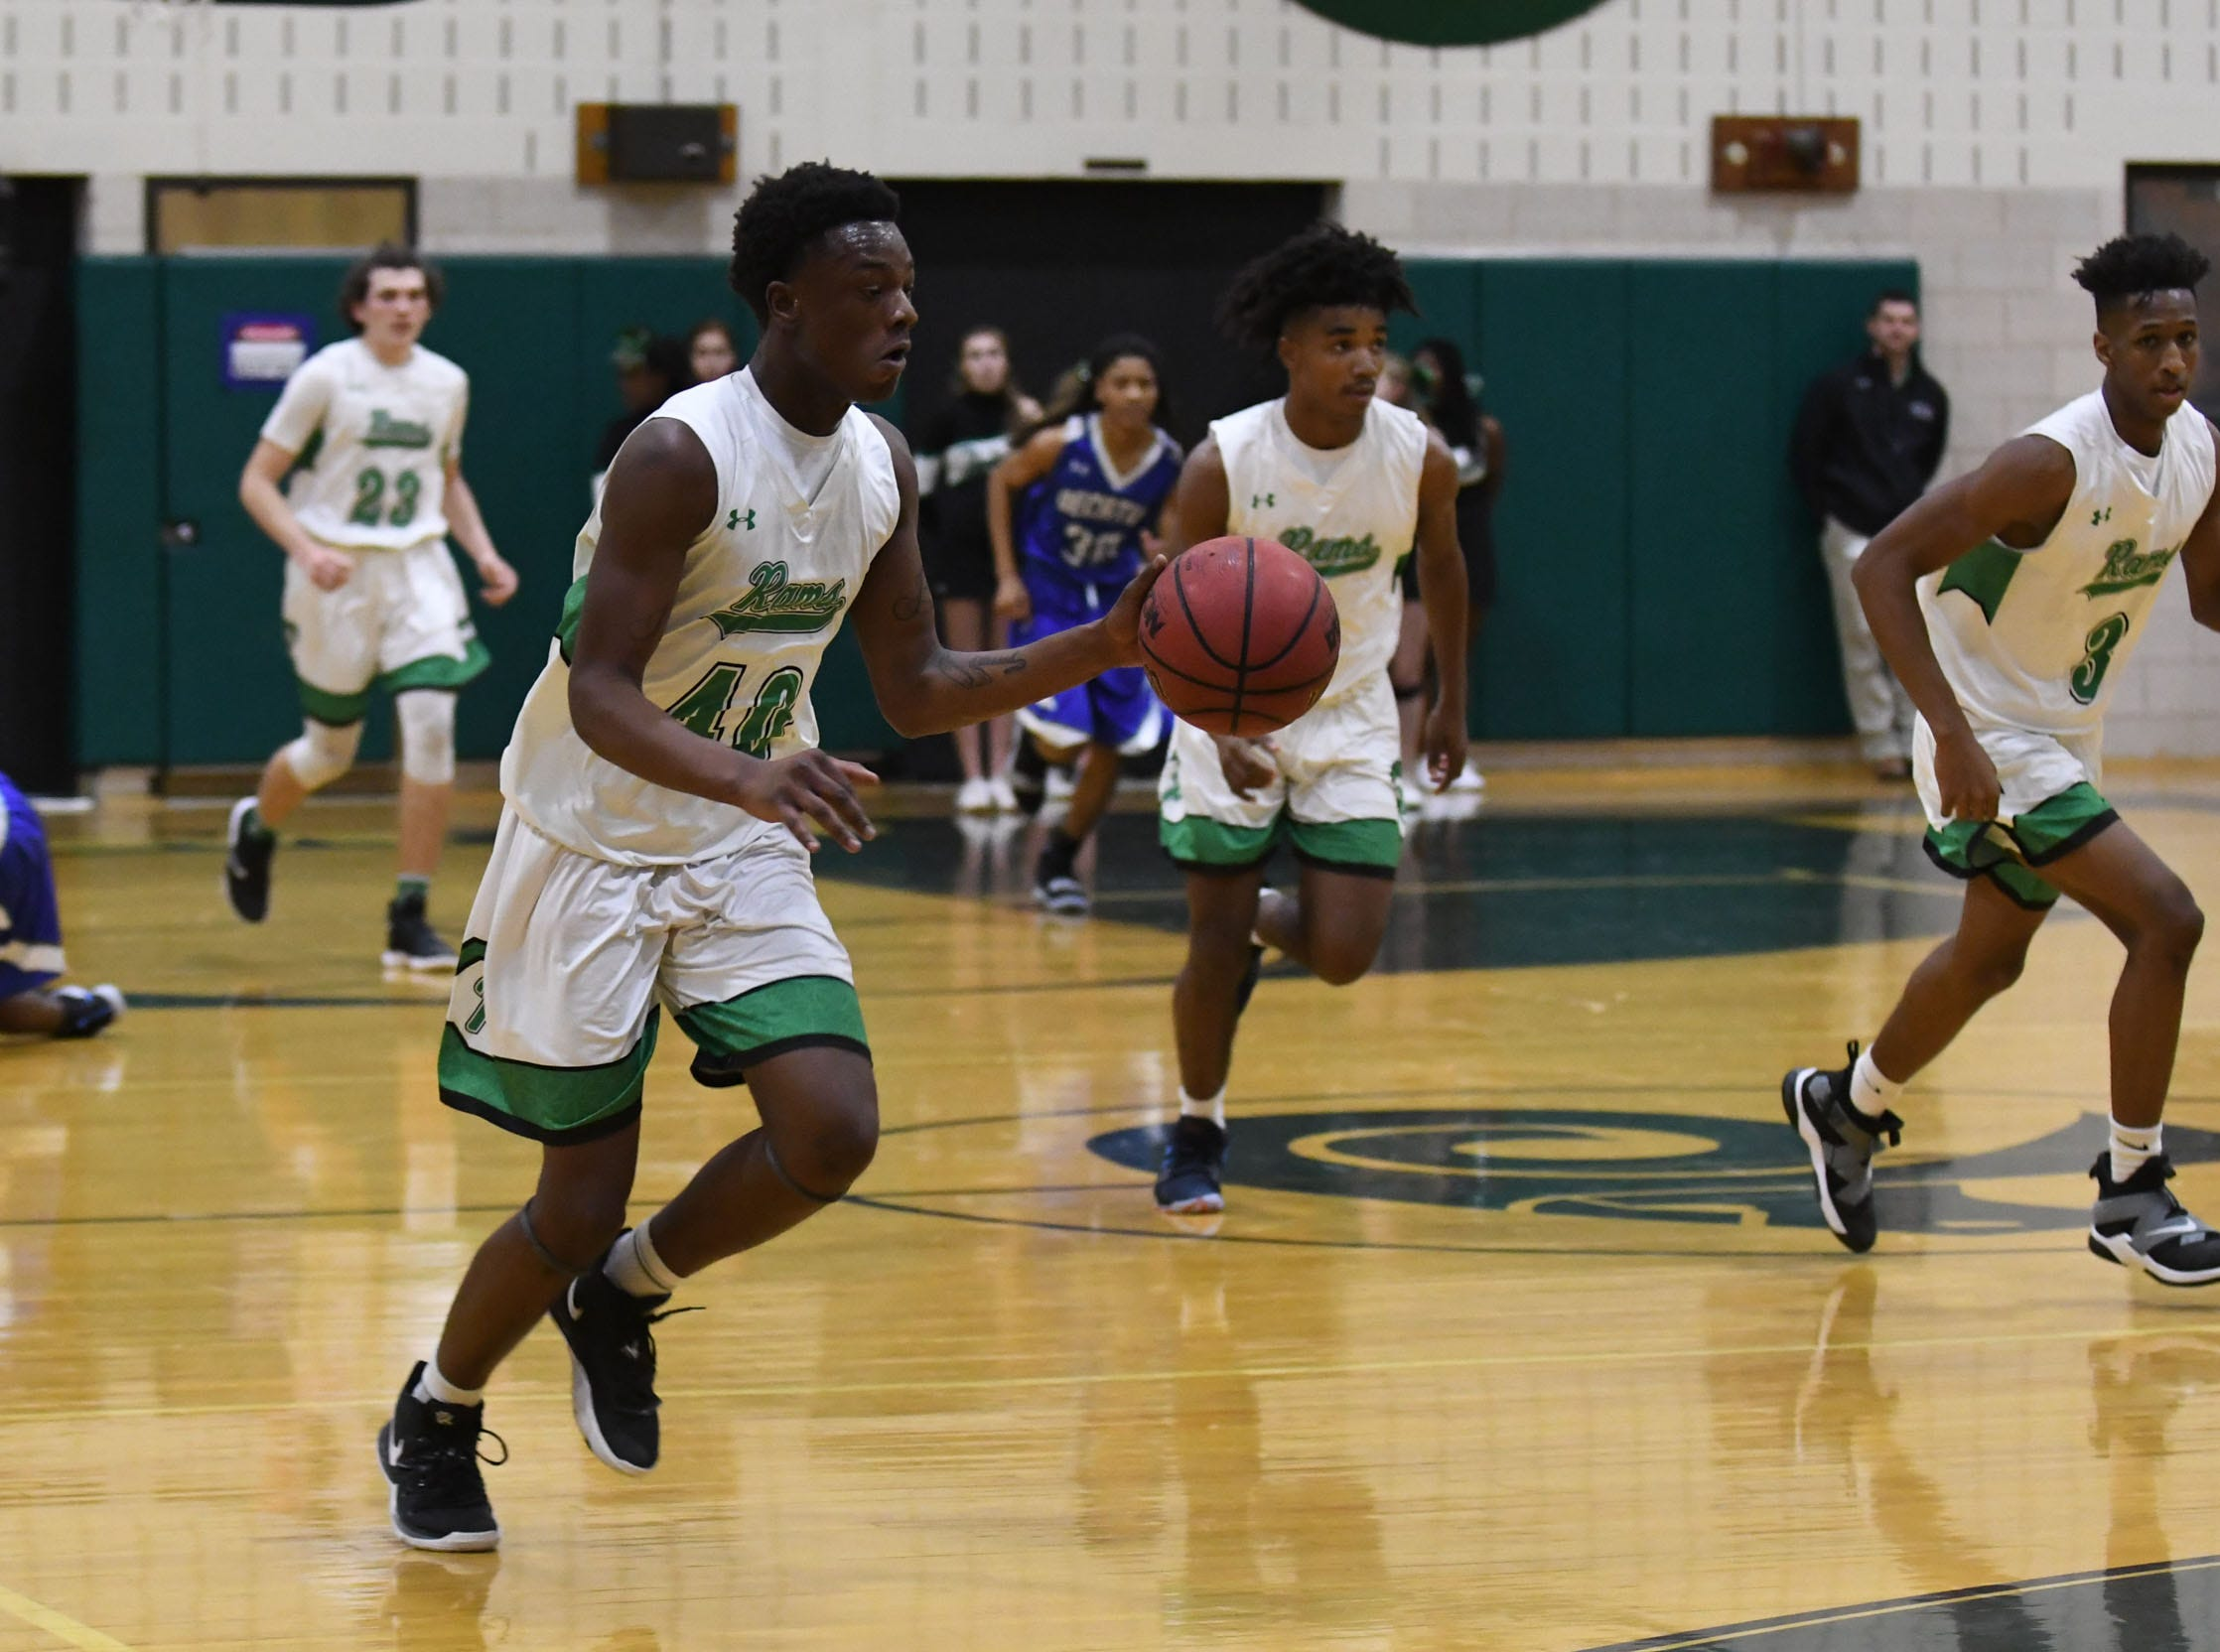 Parkside's Daquair Beaty drives the ball down the court against Stephen Decatur on Thursday, Jan. 10, 2019.